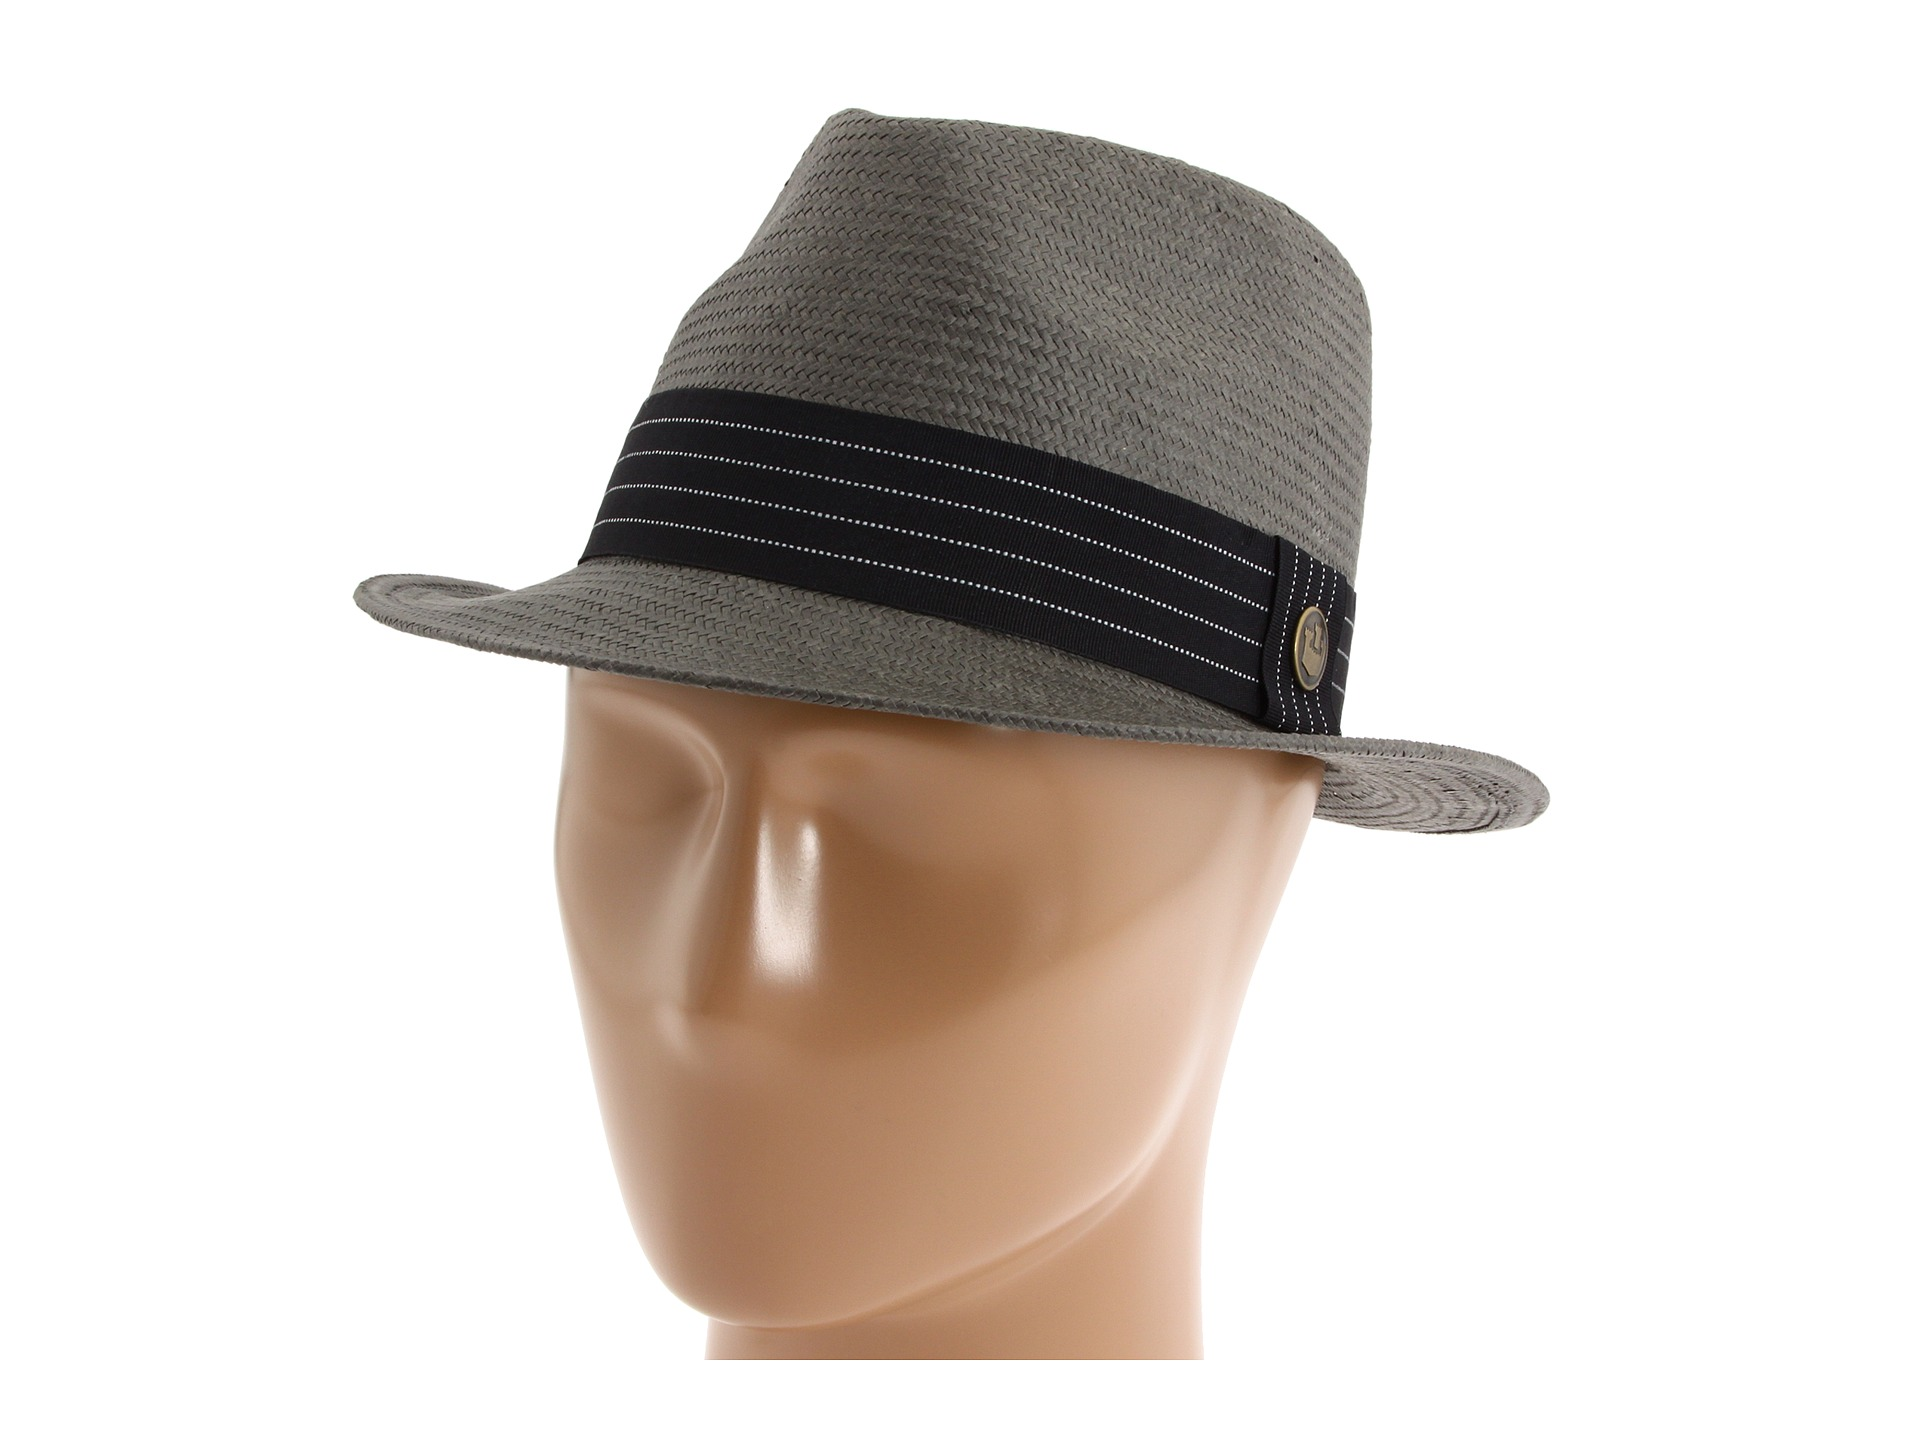 Shop the latest selection of authentic Goorin Bros. Hat Shop. Make a statement without saying a word. Fedoras, flat caps, baseball caps, and more. Free US Shipping on Orders Over $ 0. Search Label out of view. Men. Featured; New; Top Sellers To create Heritage, Goorin Brothers returned to the same Pennsylvania factory used by its.